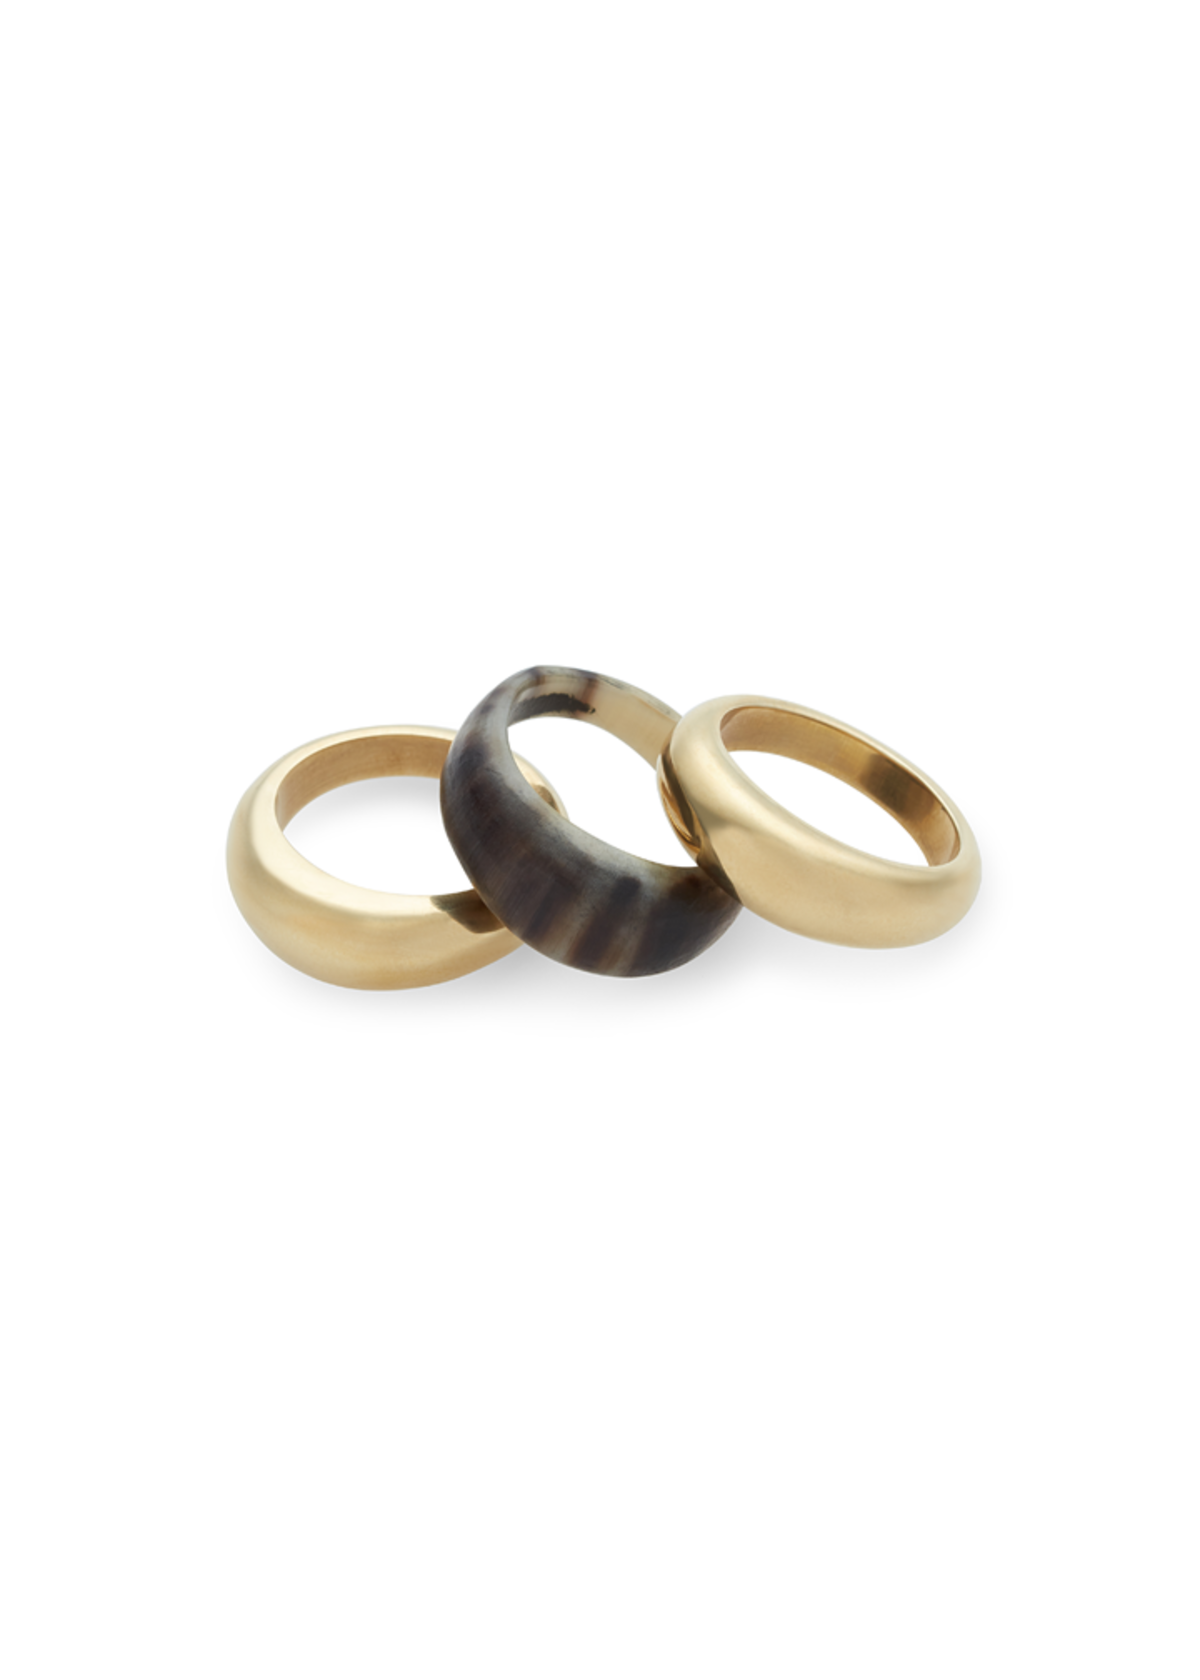 Mixed Material Stacking Rings